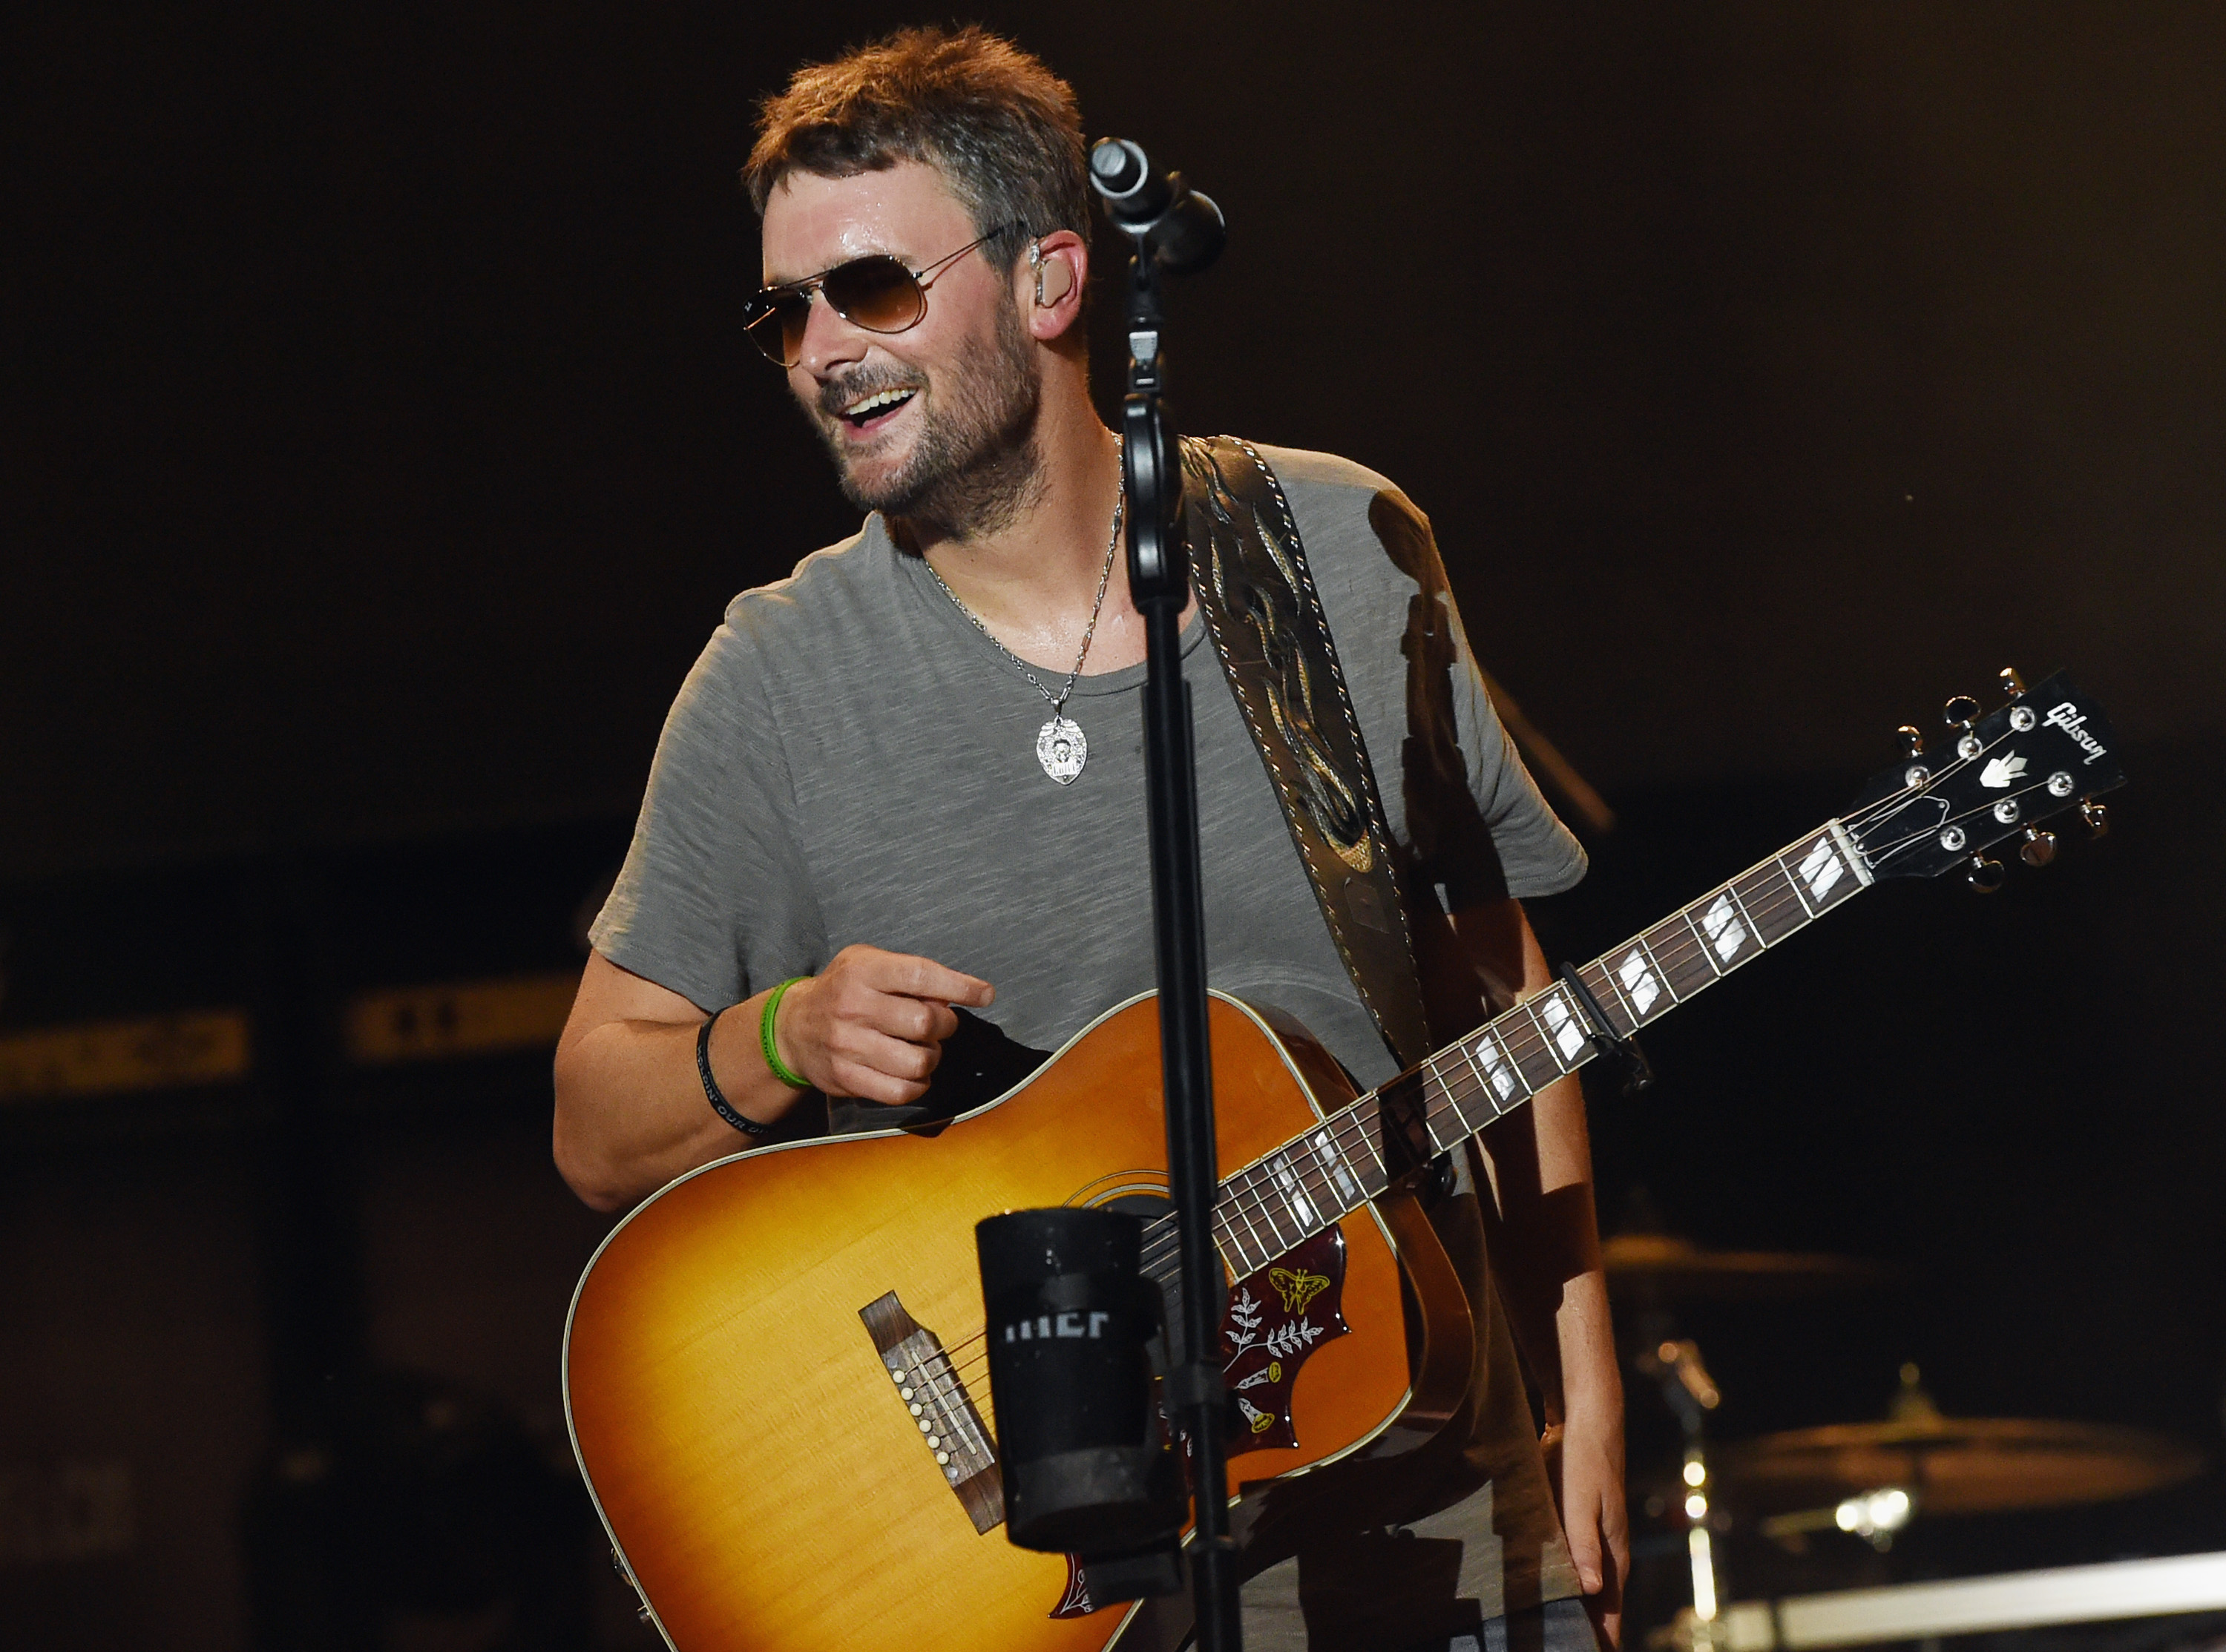 Eric Church performs during Pepsi's Rock The South Festival - Day 2 in Heritage Park on June 2, 2018 in Cullman, Alabama.